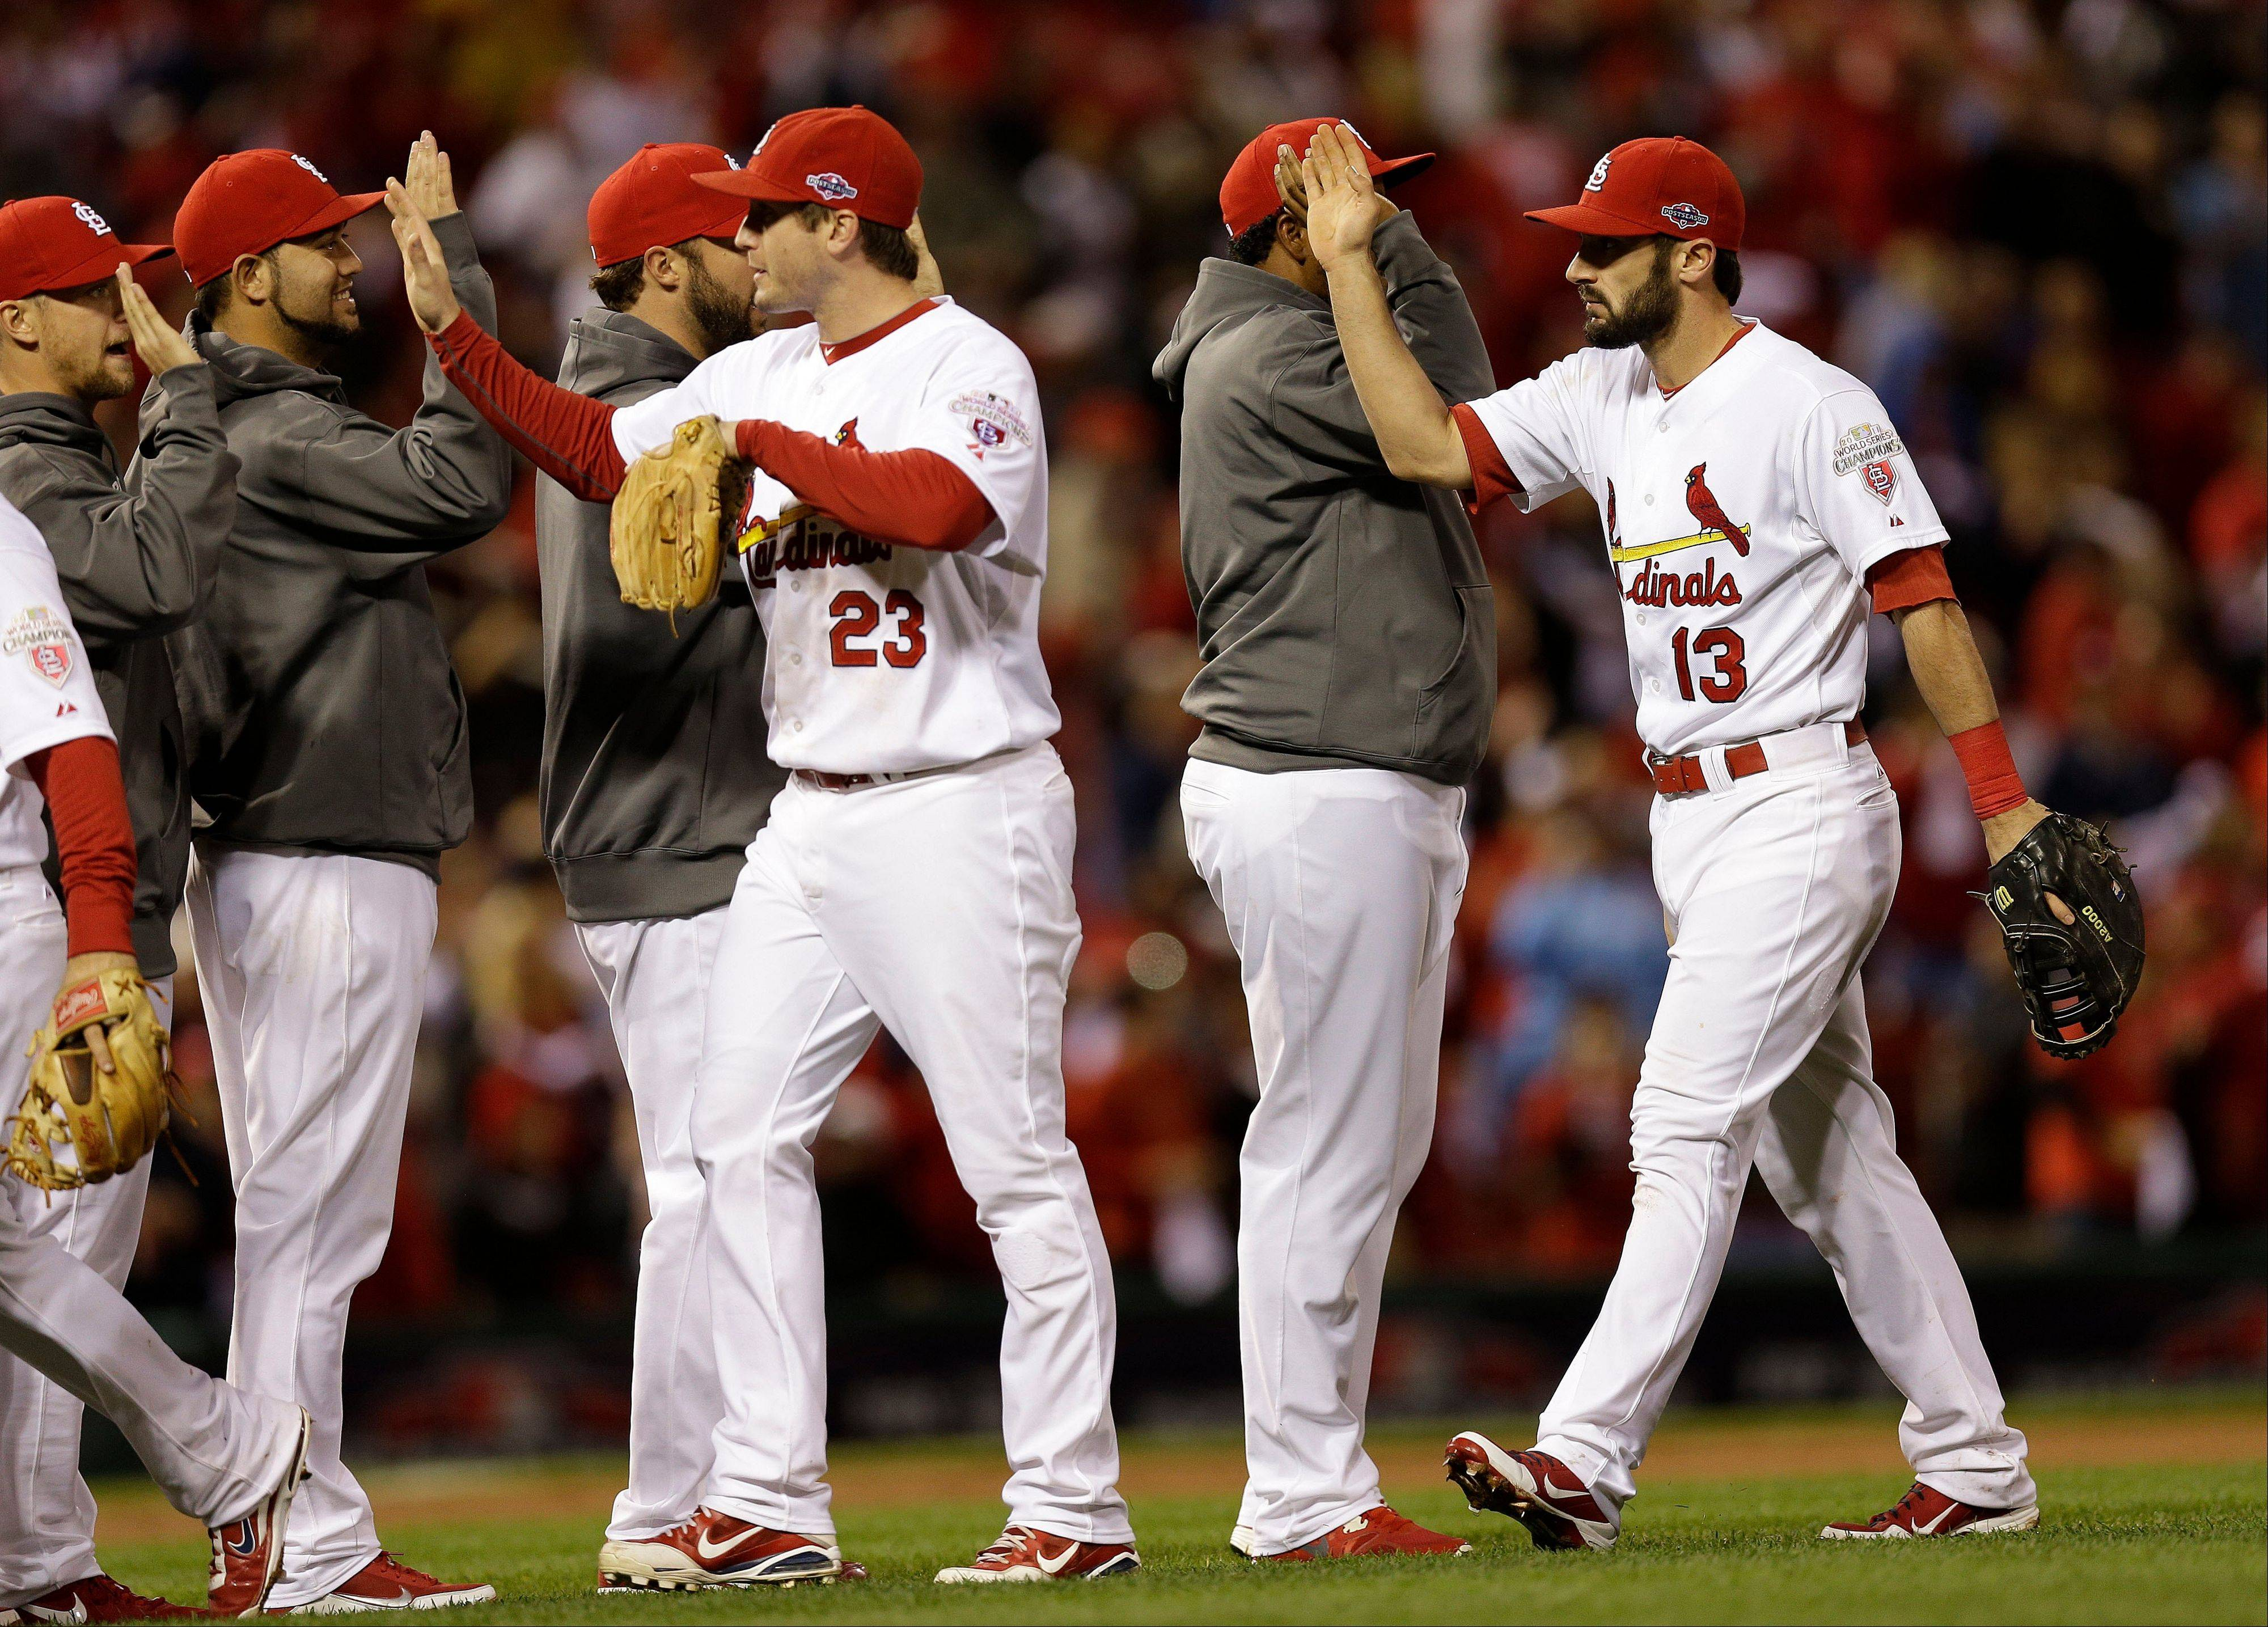 St. Louis Cardinals players celebrate after beating the San Francisco Giants 3-1 in Game 3 of baseball's National League championship series Wednesday, Oct. 17, 2012, in St. Louis. (AP Photo/David J. Phillip)